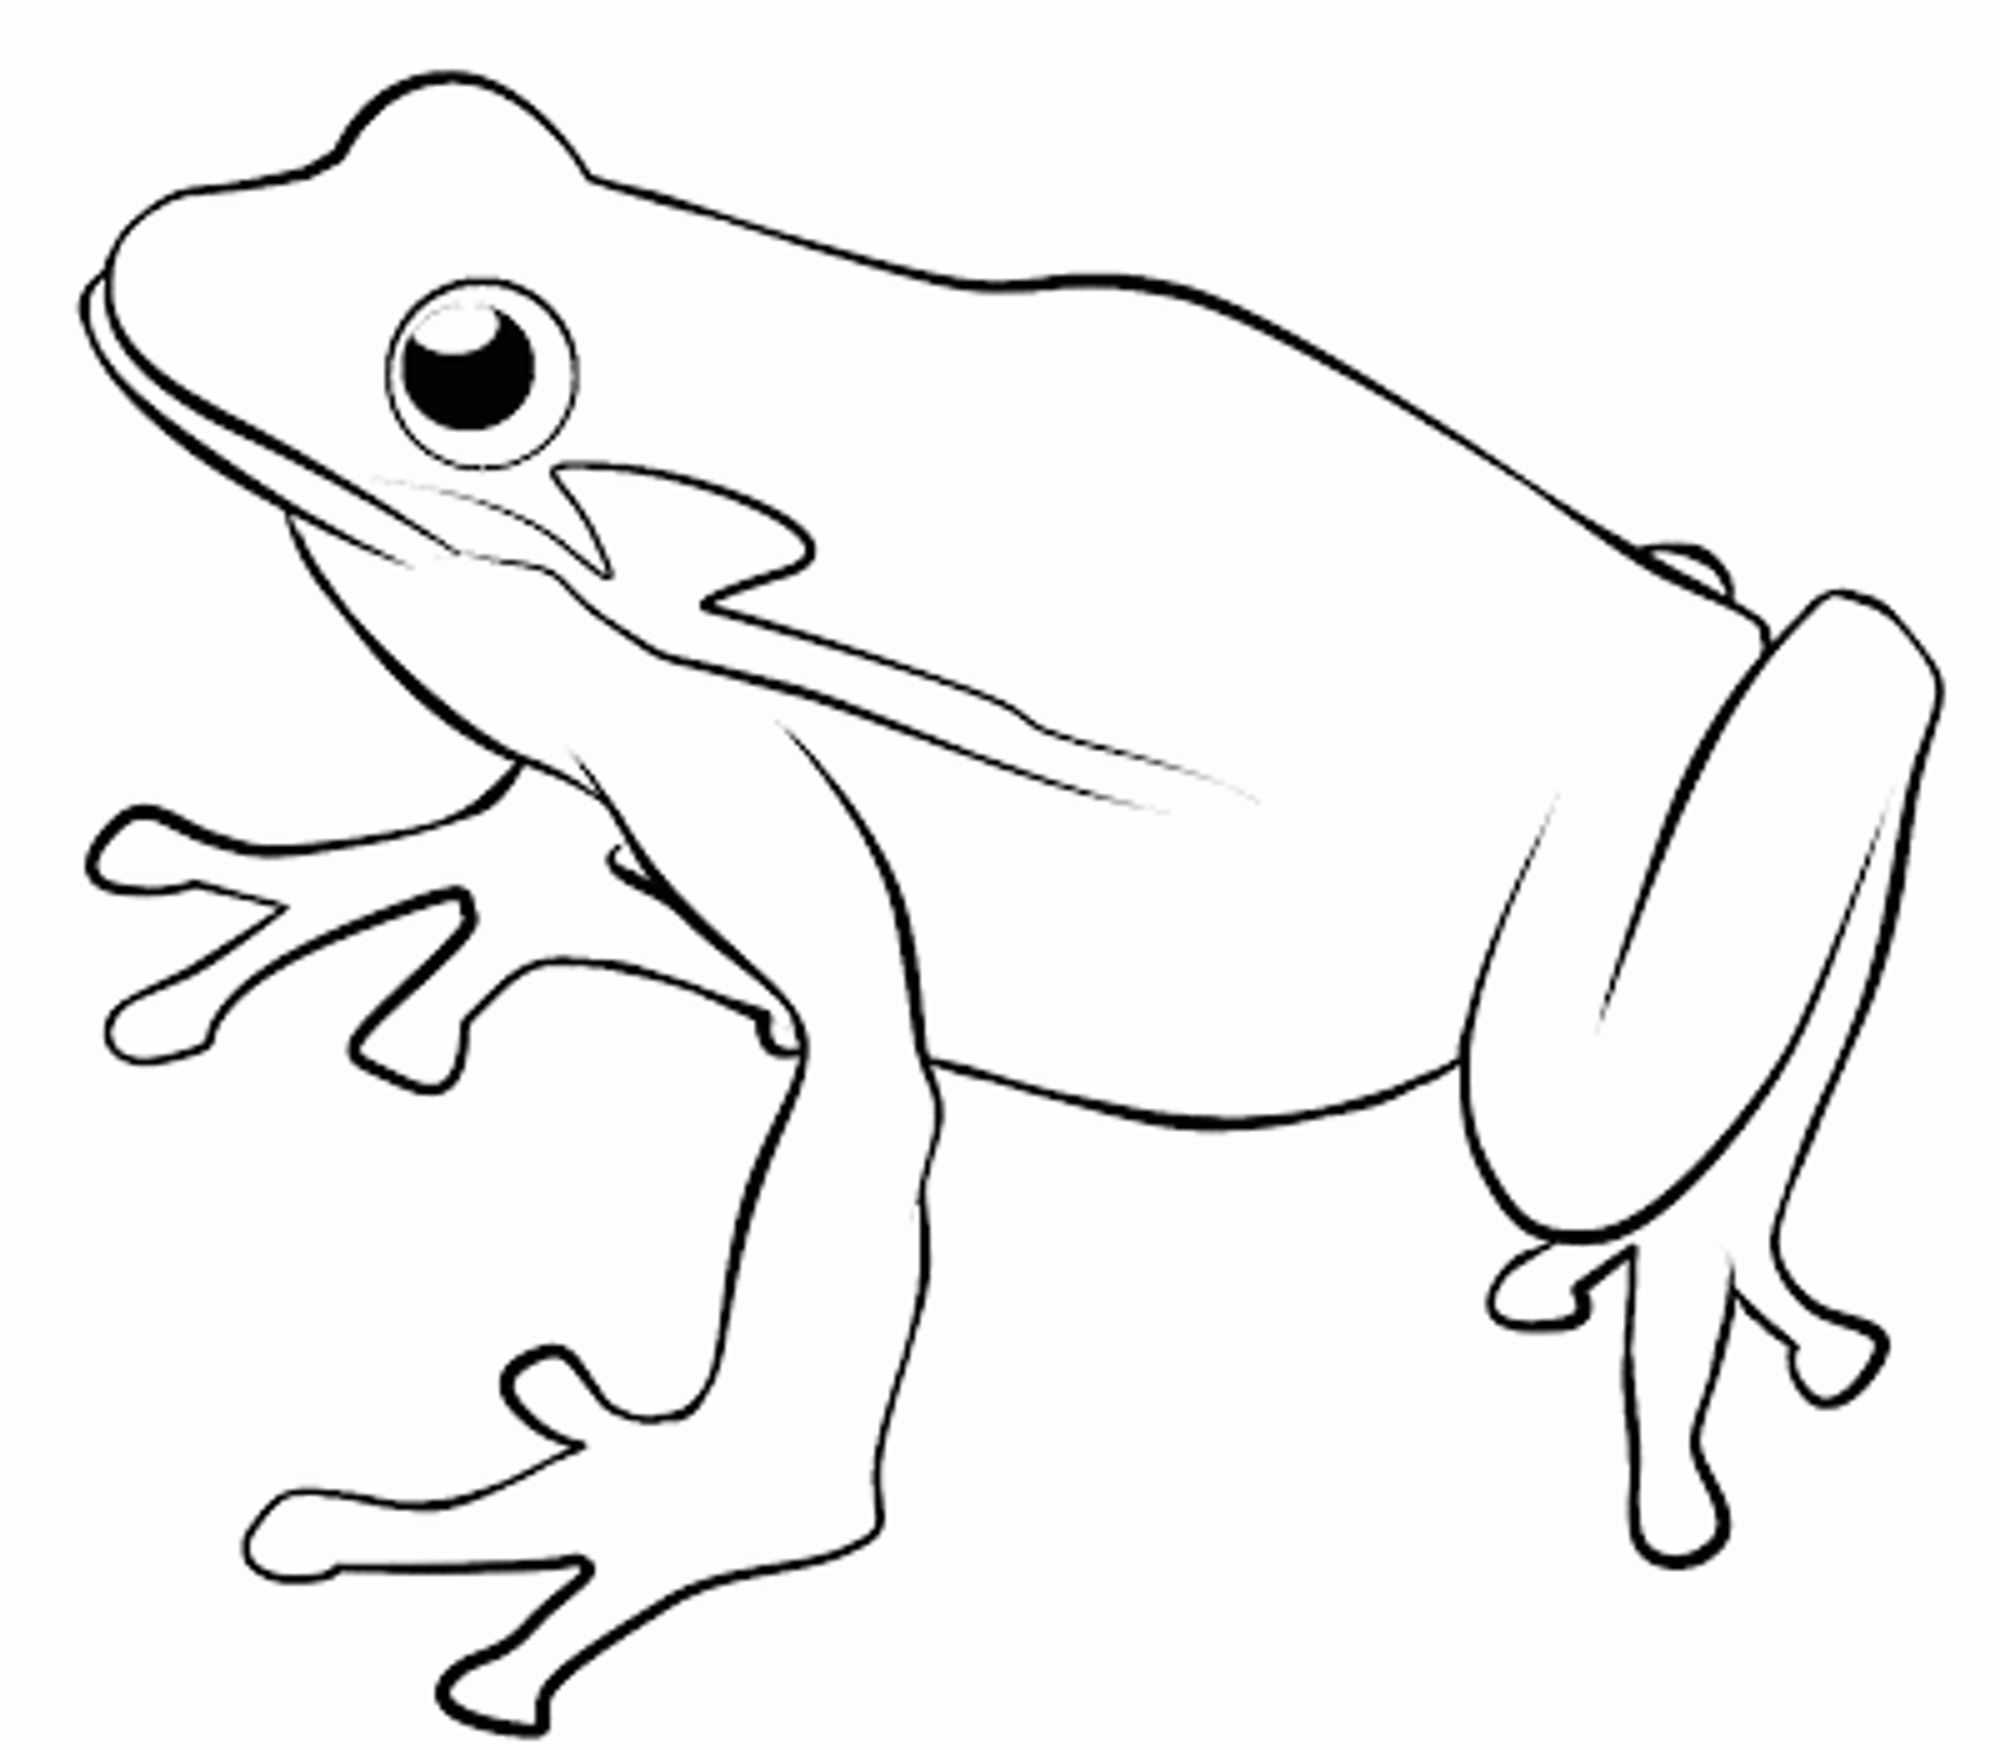 2000x1750 Coloring Pages Luxury Frog Drawing For Kids